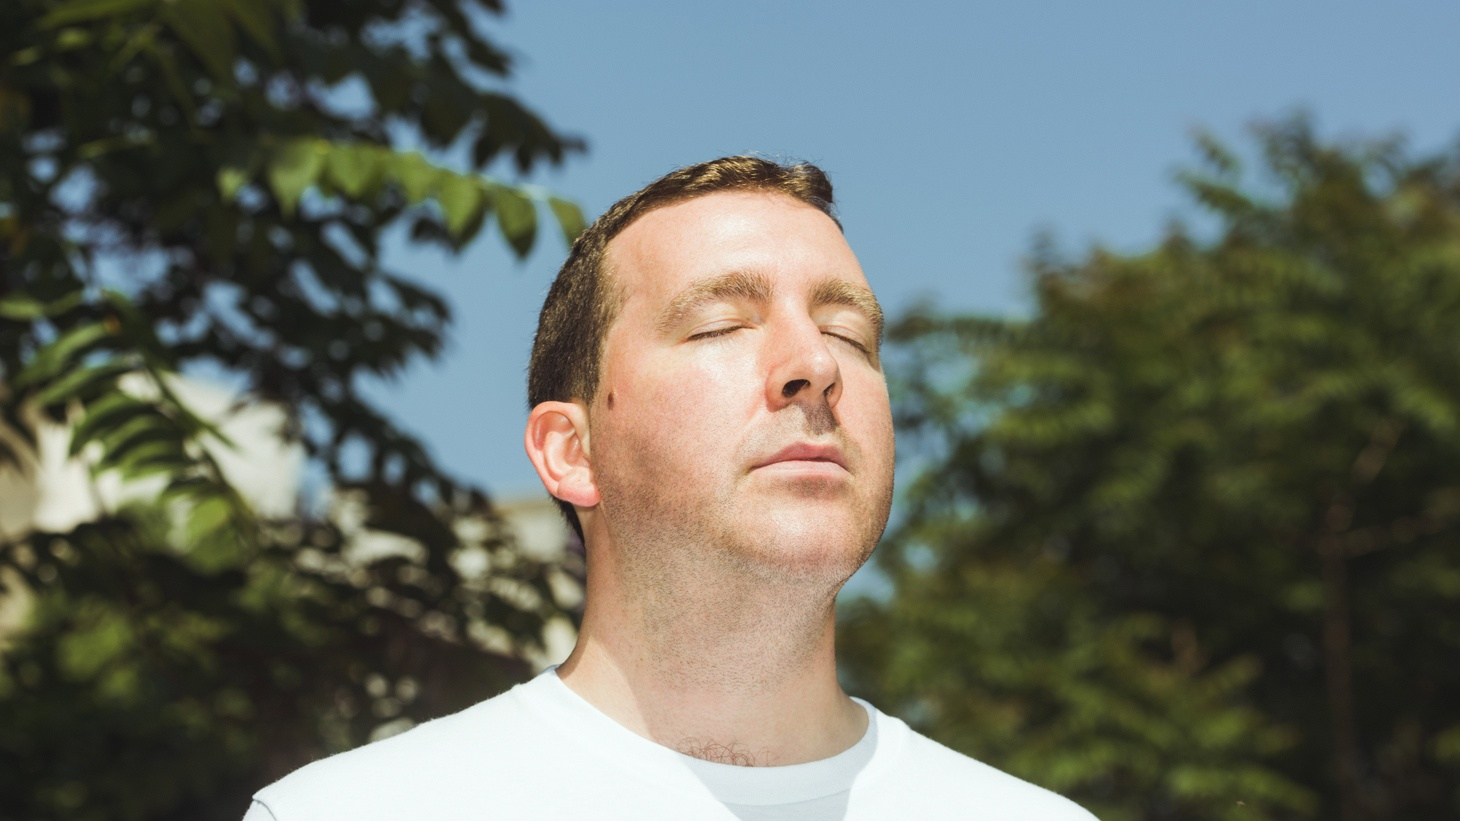 Joe Goddard has a strong track record. He was first lauded as the singer, producer and founding member of Hot Chip and for his work with The 2 Bears.